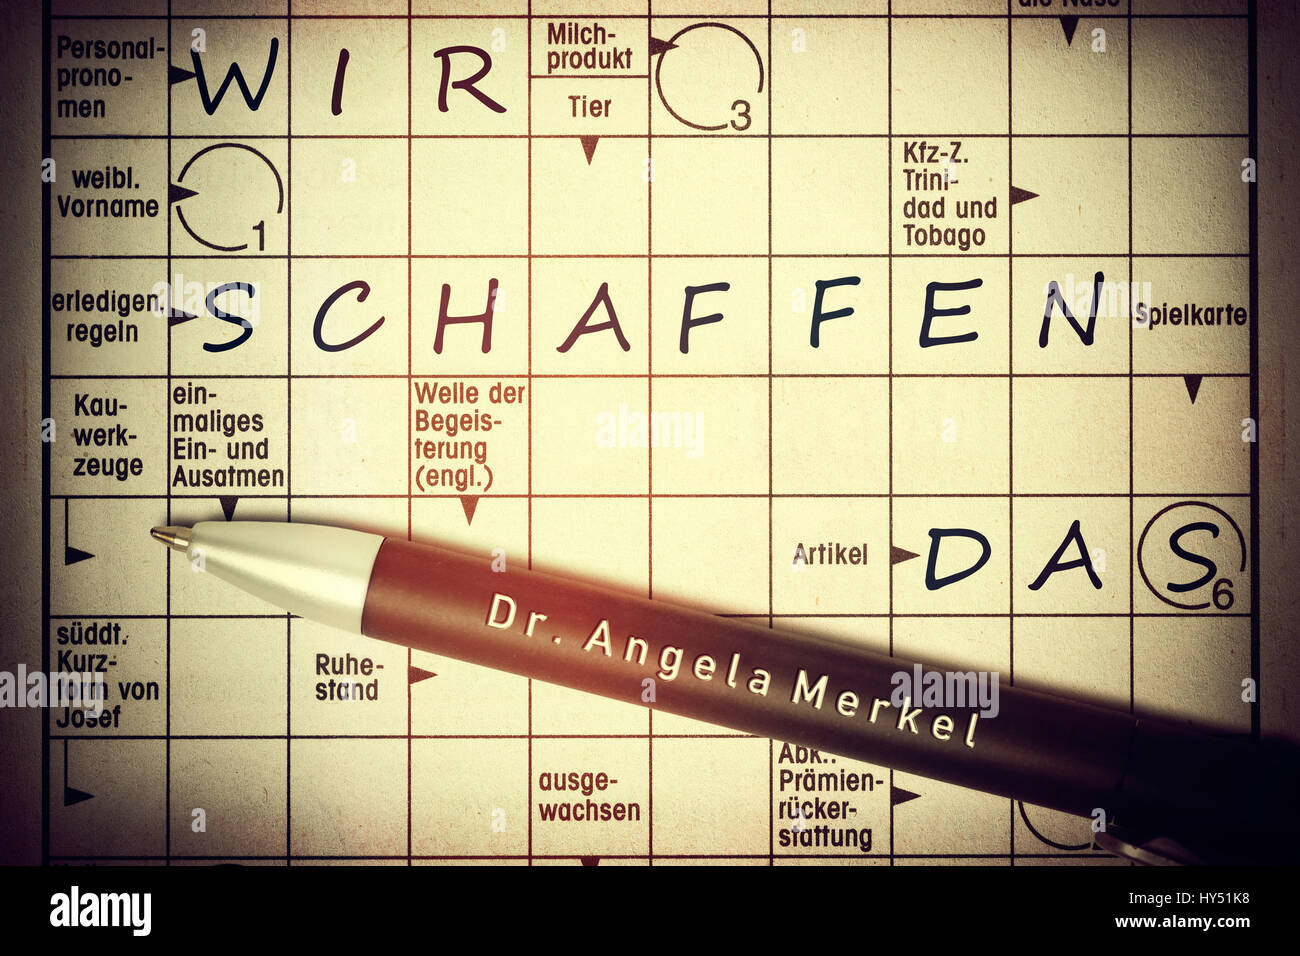 Attraktiv Crossword Puzzles With The Concepts We, Create,, Kreuzwortraetsel Mit Den  Begriffen Wir,